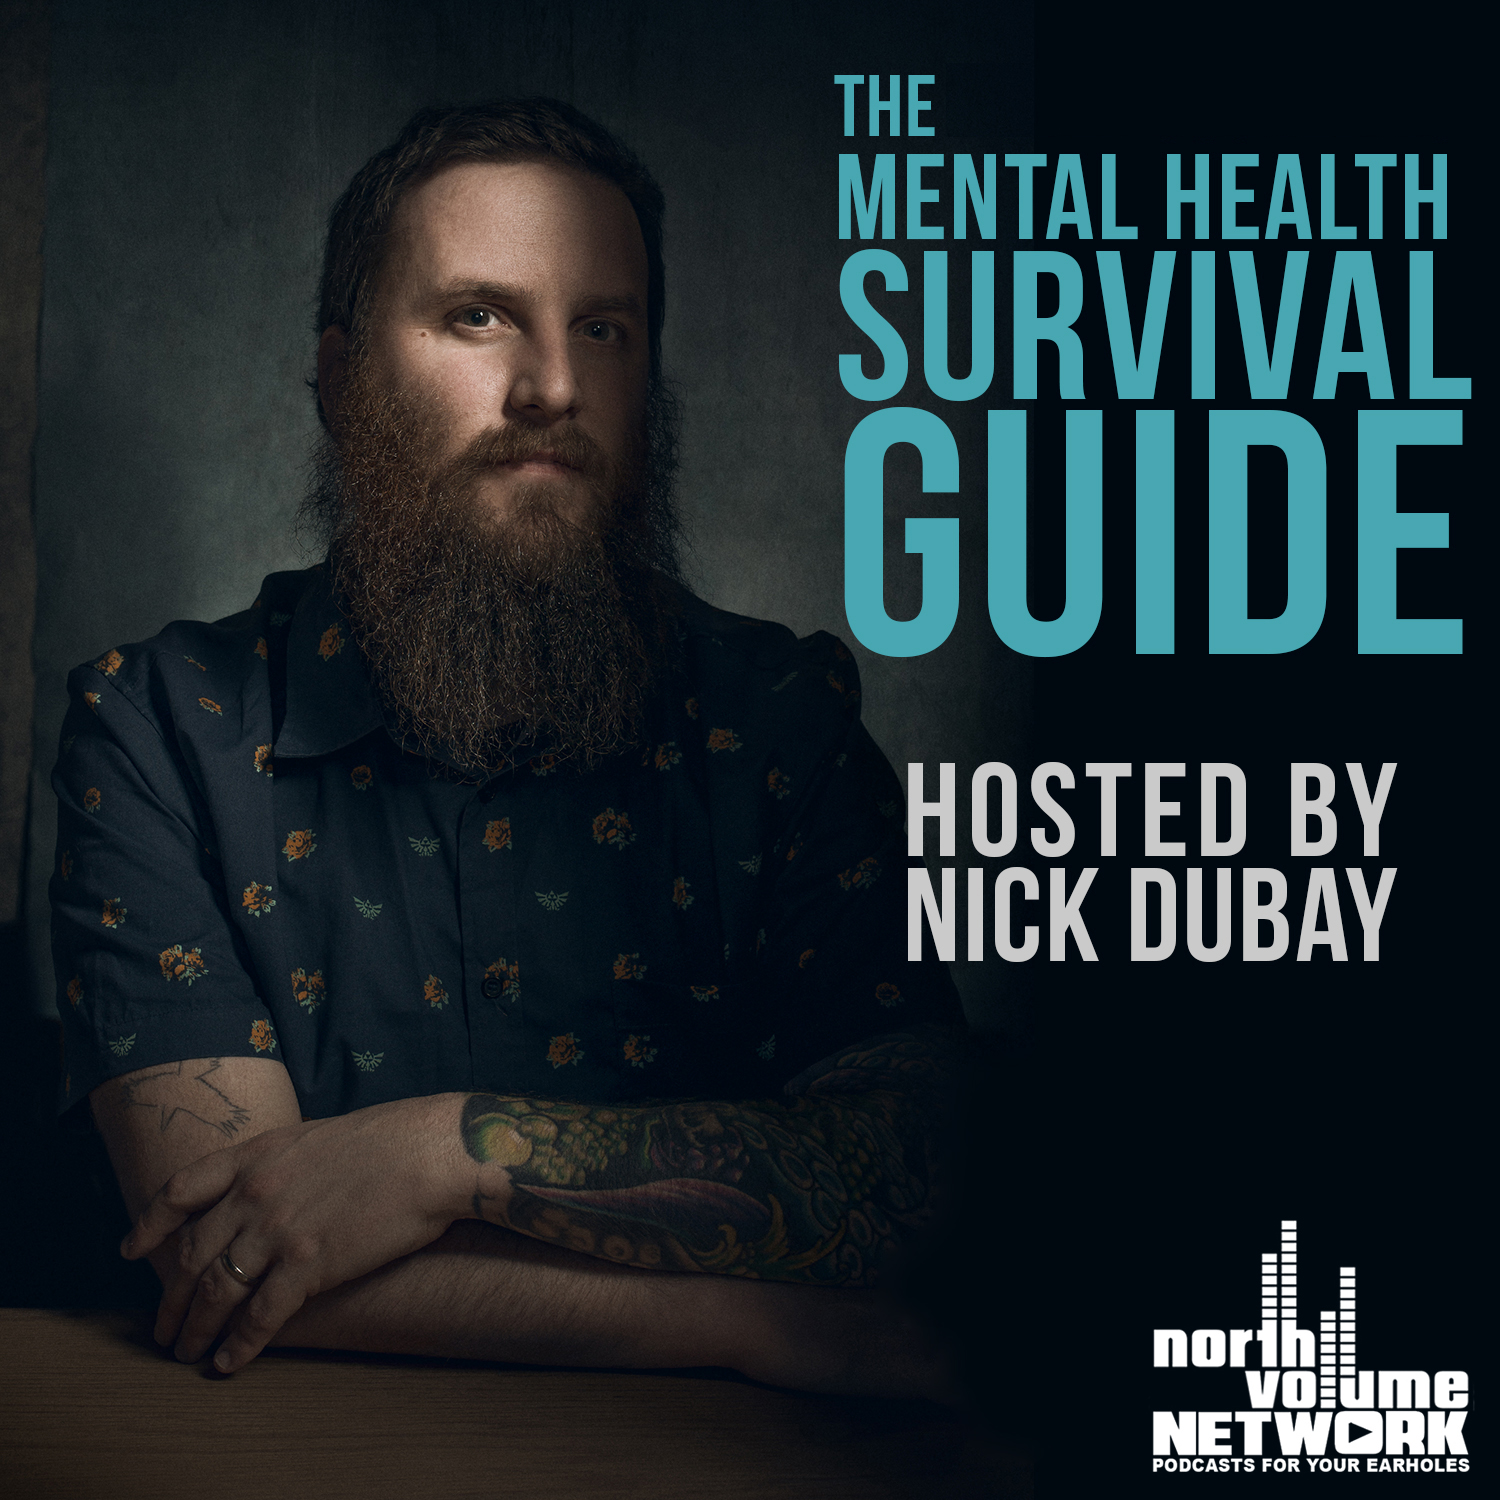 mental-health-survival-guide-nick-dubay.jpg